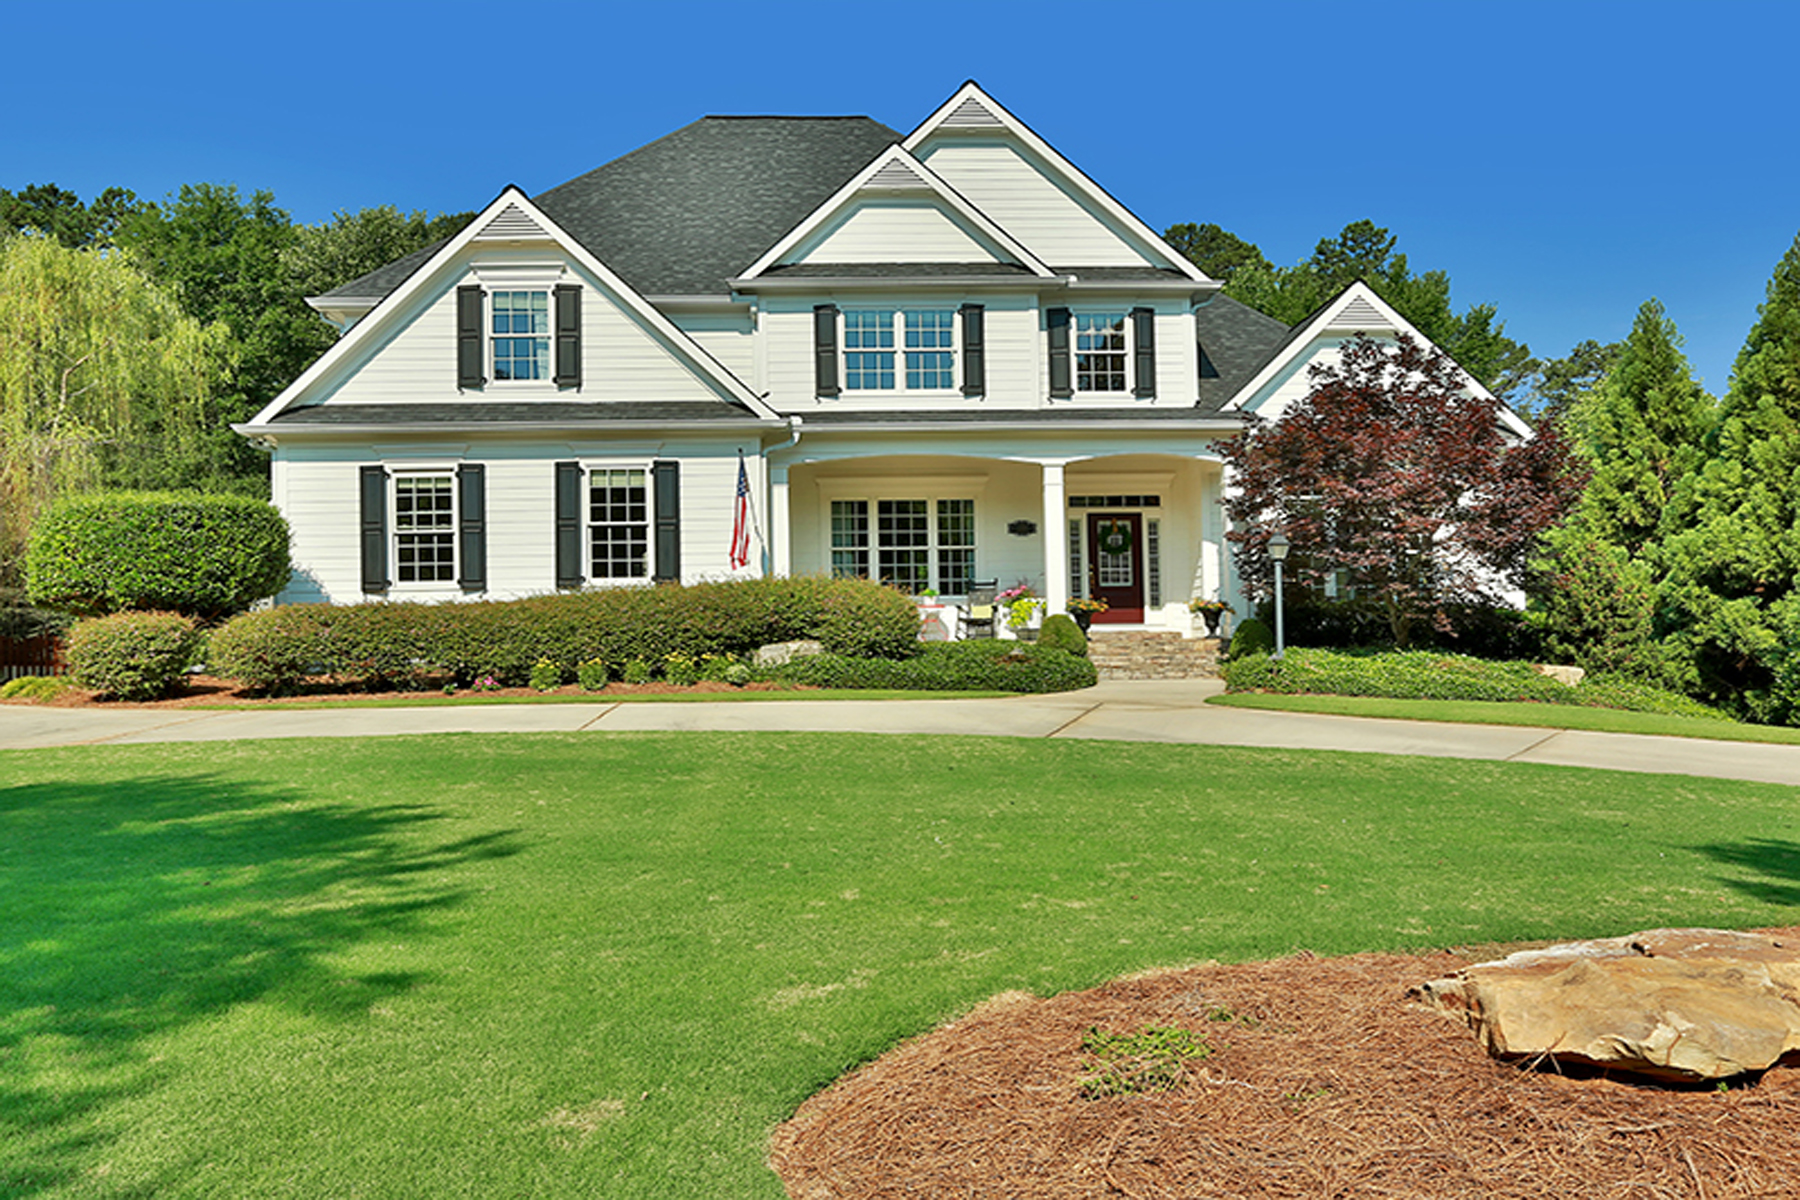 단독 가정 주택 용 매매 에 What A Gem! Truly Custom Highgrove Home 325 Highgrove Drive Fayetteville, 조지아 30215 미국